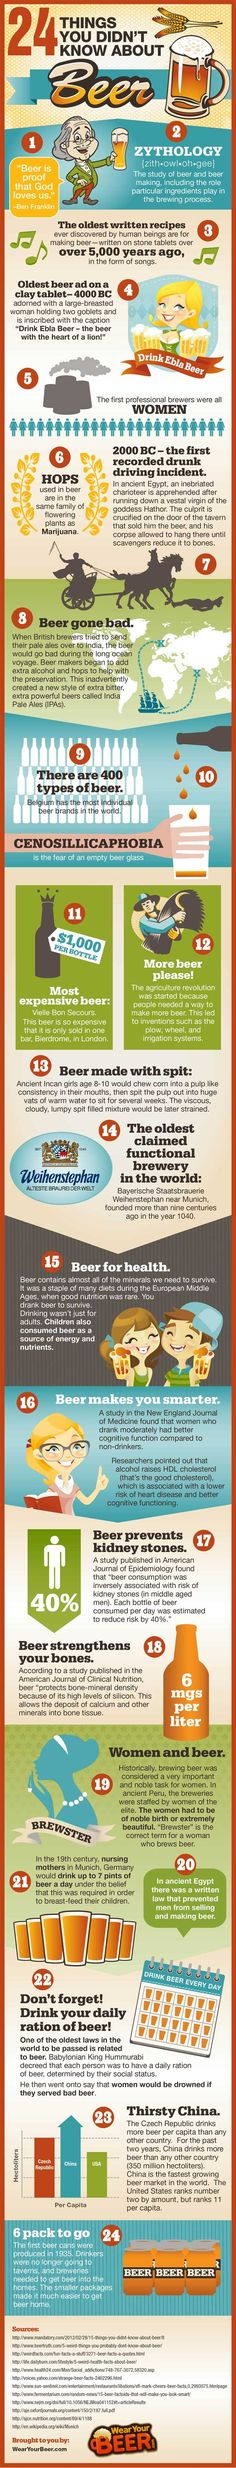 24 Things you didn't know about Beer - http://www.coolinfoimages.com/infographics/24-things-you-didnt-know-about-beer/